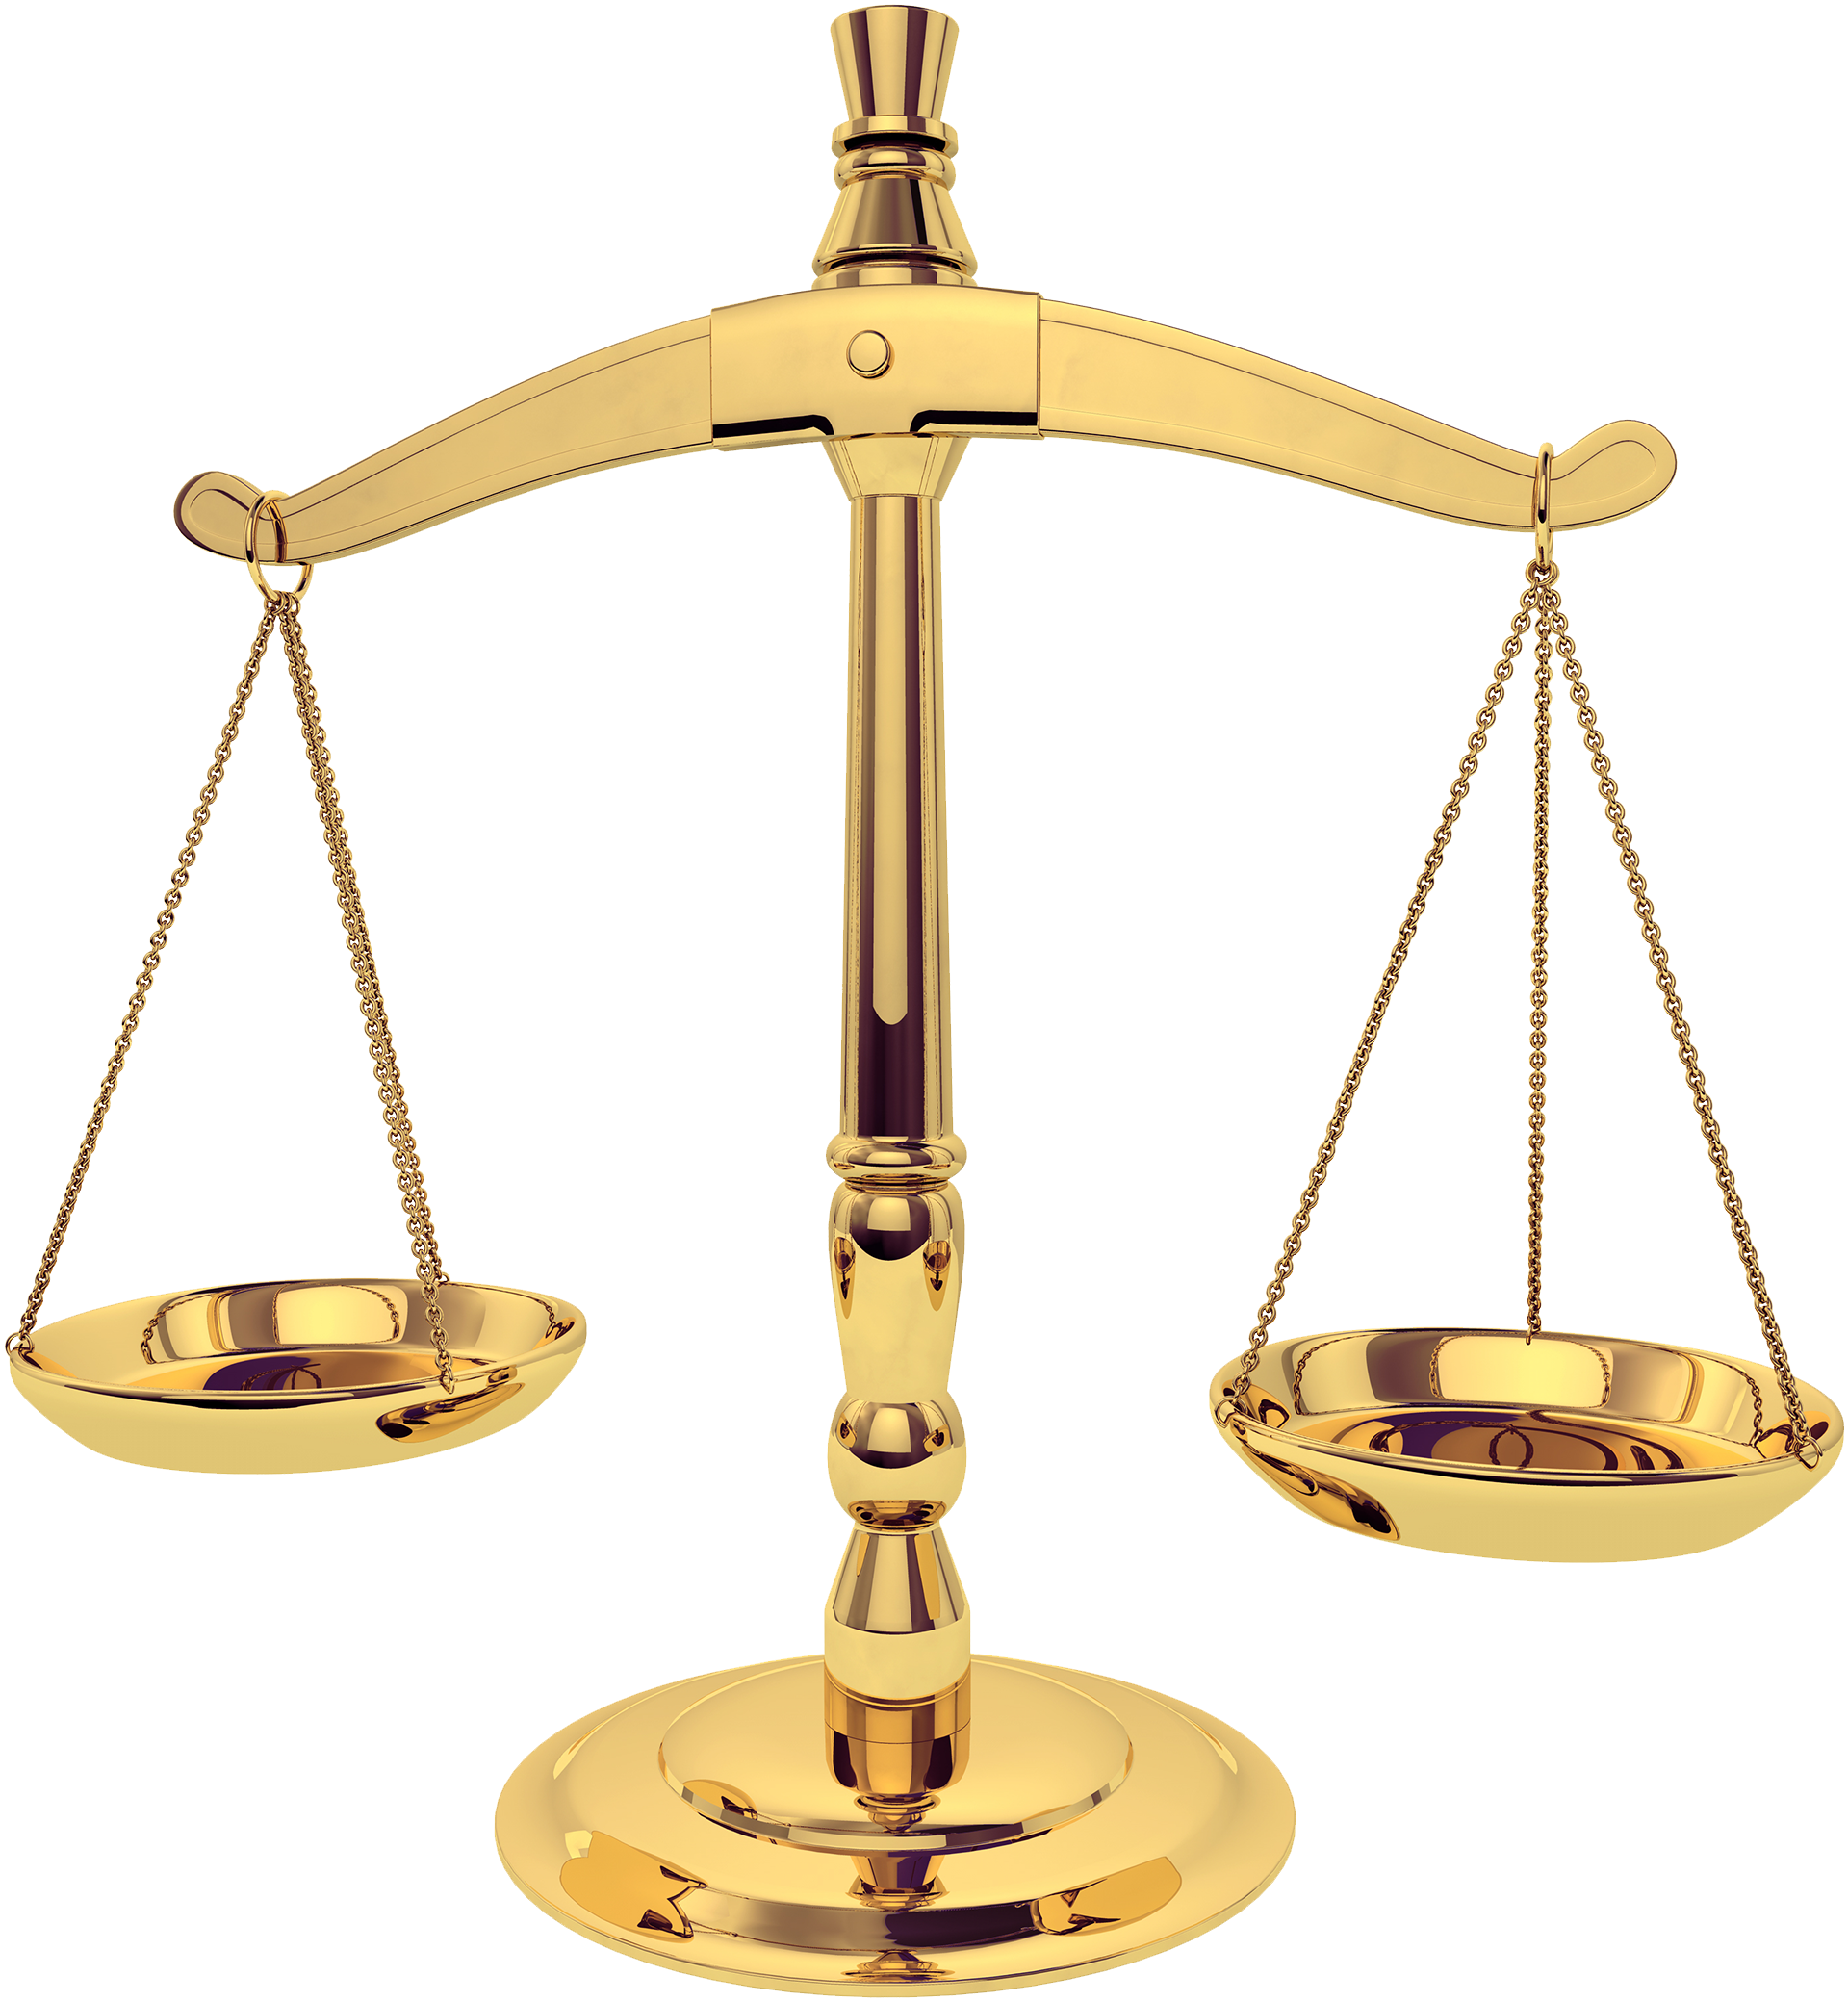 Golden Scales of JUSTICE (TRUTH FACTS EVIDENCE PROOF) EQUALITY FAIRNESS PLURALISM OPENNESS TRANSPARENCY - BE A CRITICAL THINKER - THINK FOR YOURSELF - QUESTION AUTHORITY - ALWAYS SPEAK TRUTH TO POWER